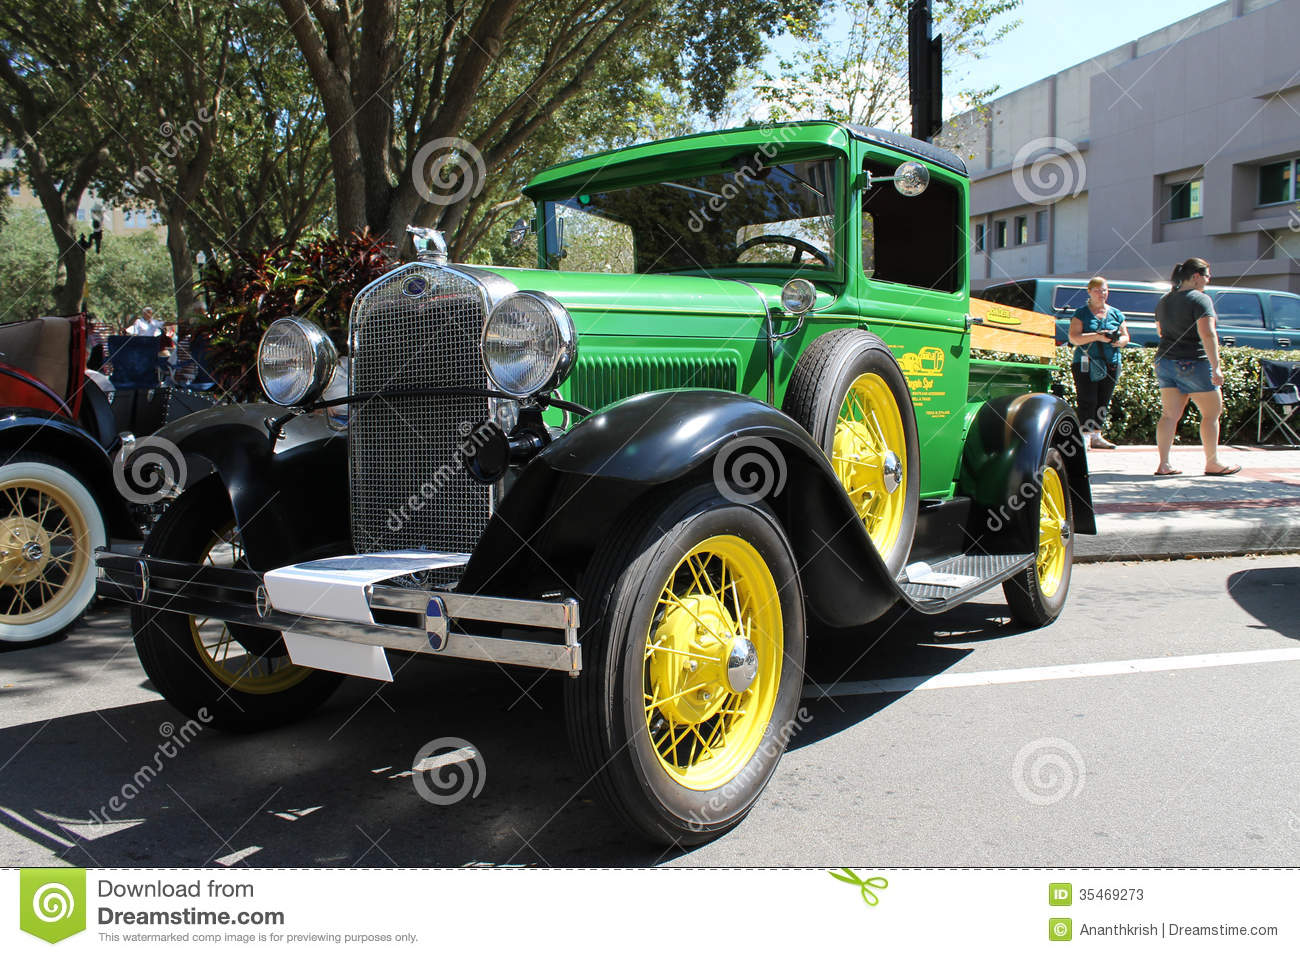 Old Ford Pickup Truck At The Car Show Stock Photo 35469273 - Megapixl